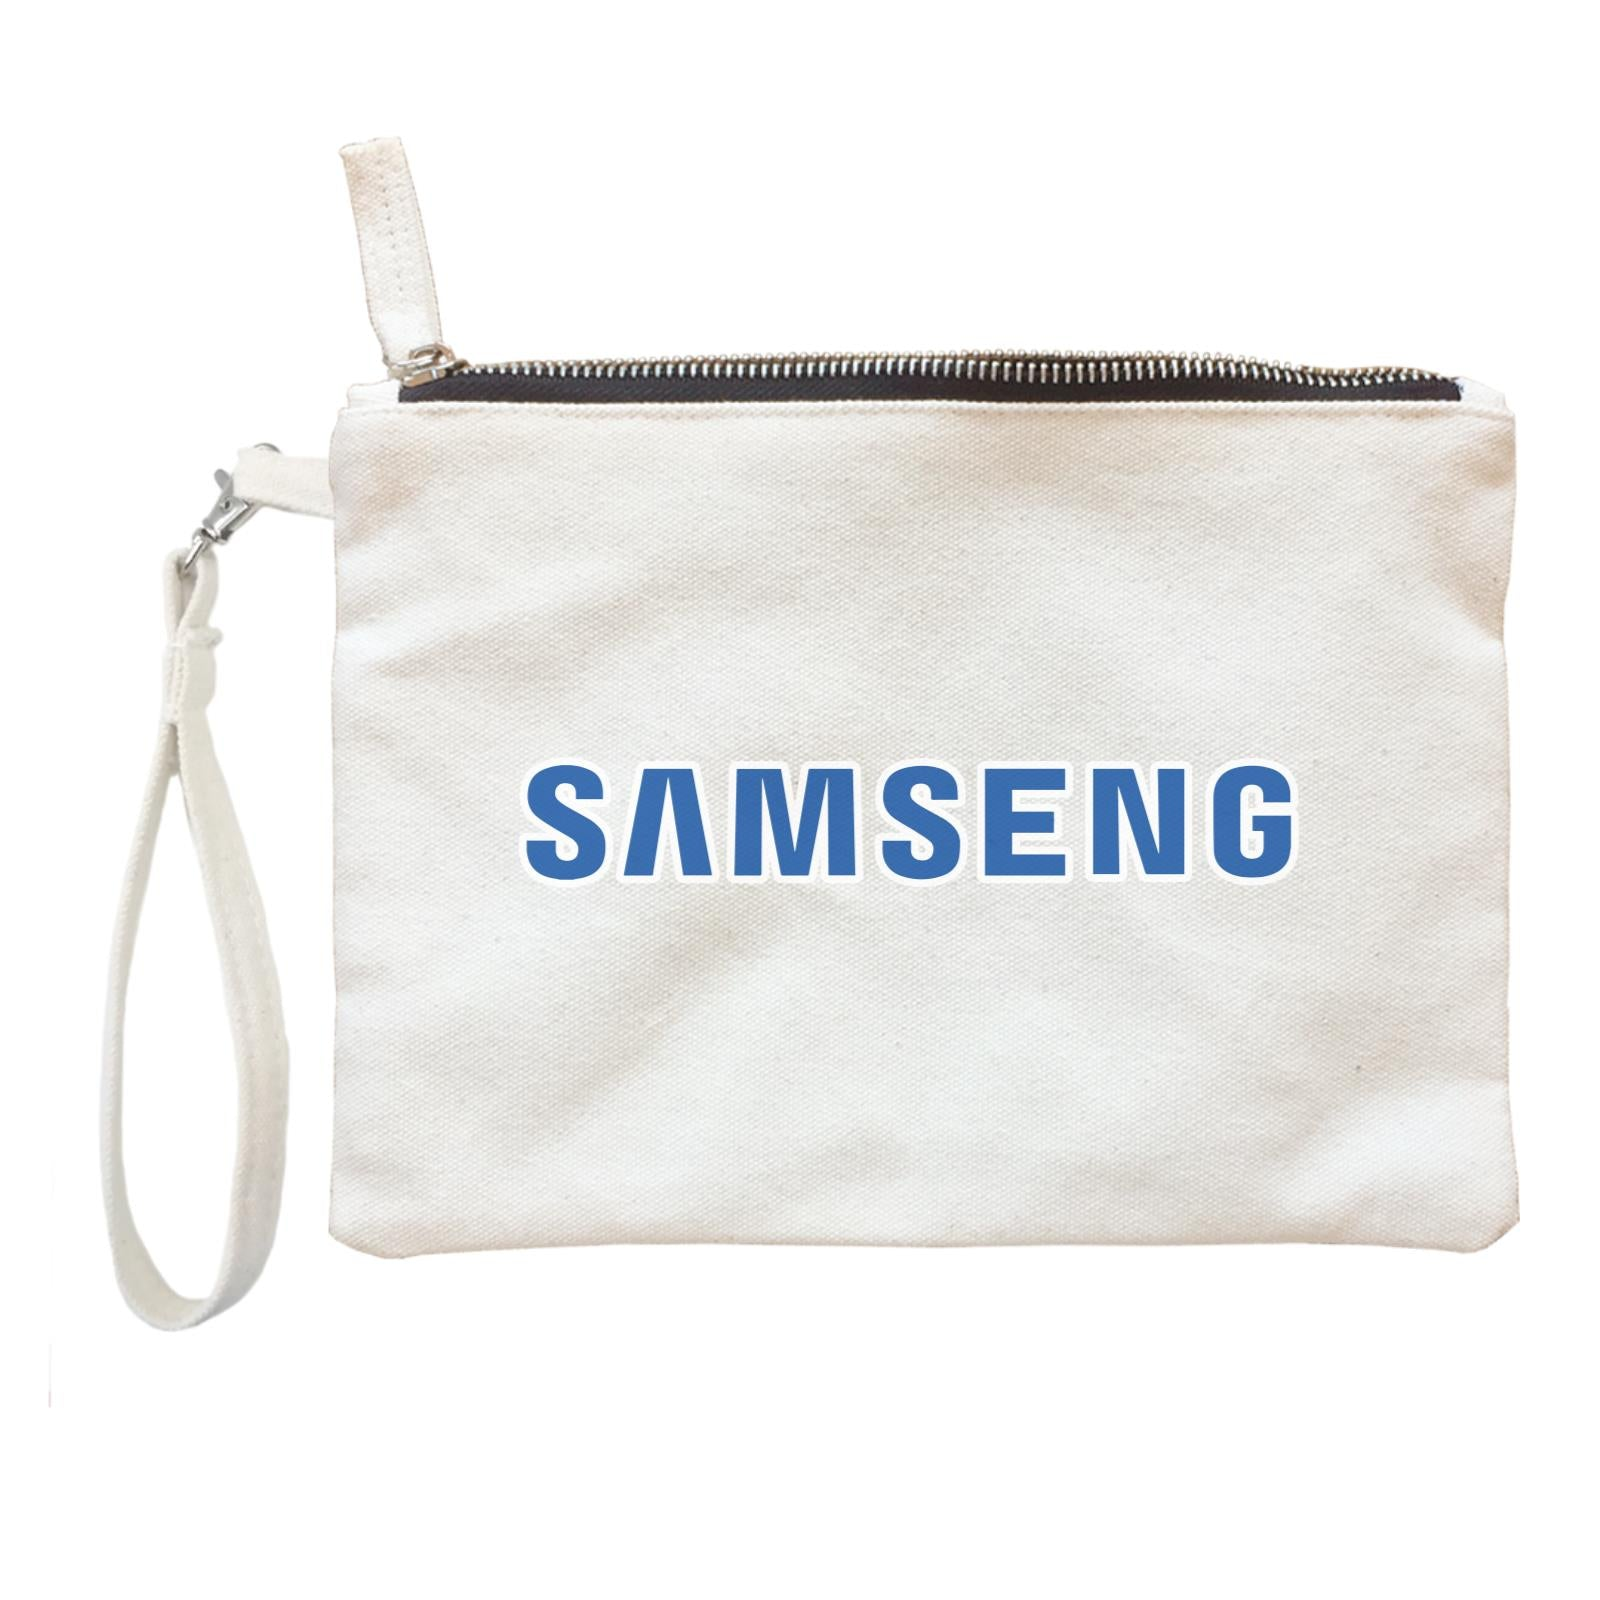 Slang Statement Samseng Accessories Zipper Pouch with Handle